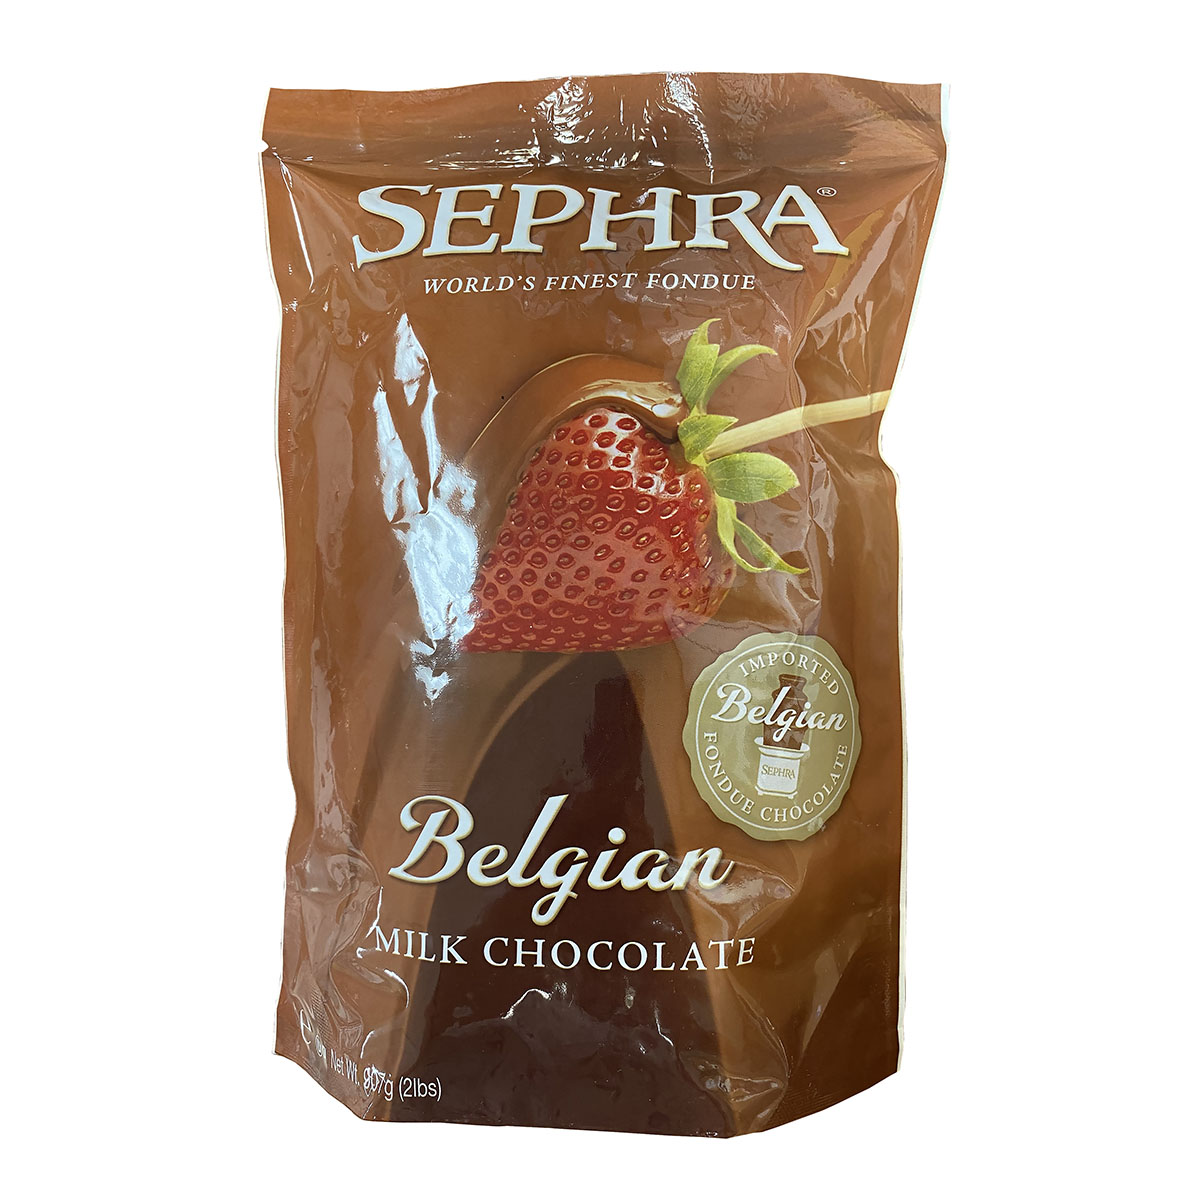 Additional Bags Of Milk Chocolate Sephra 2 Pounds